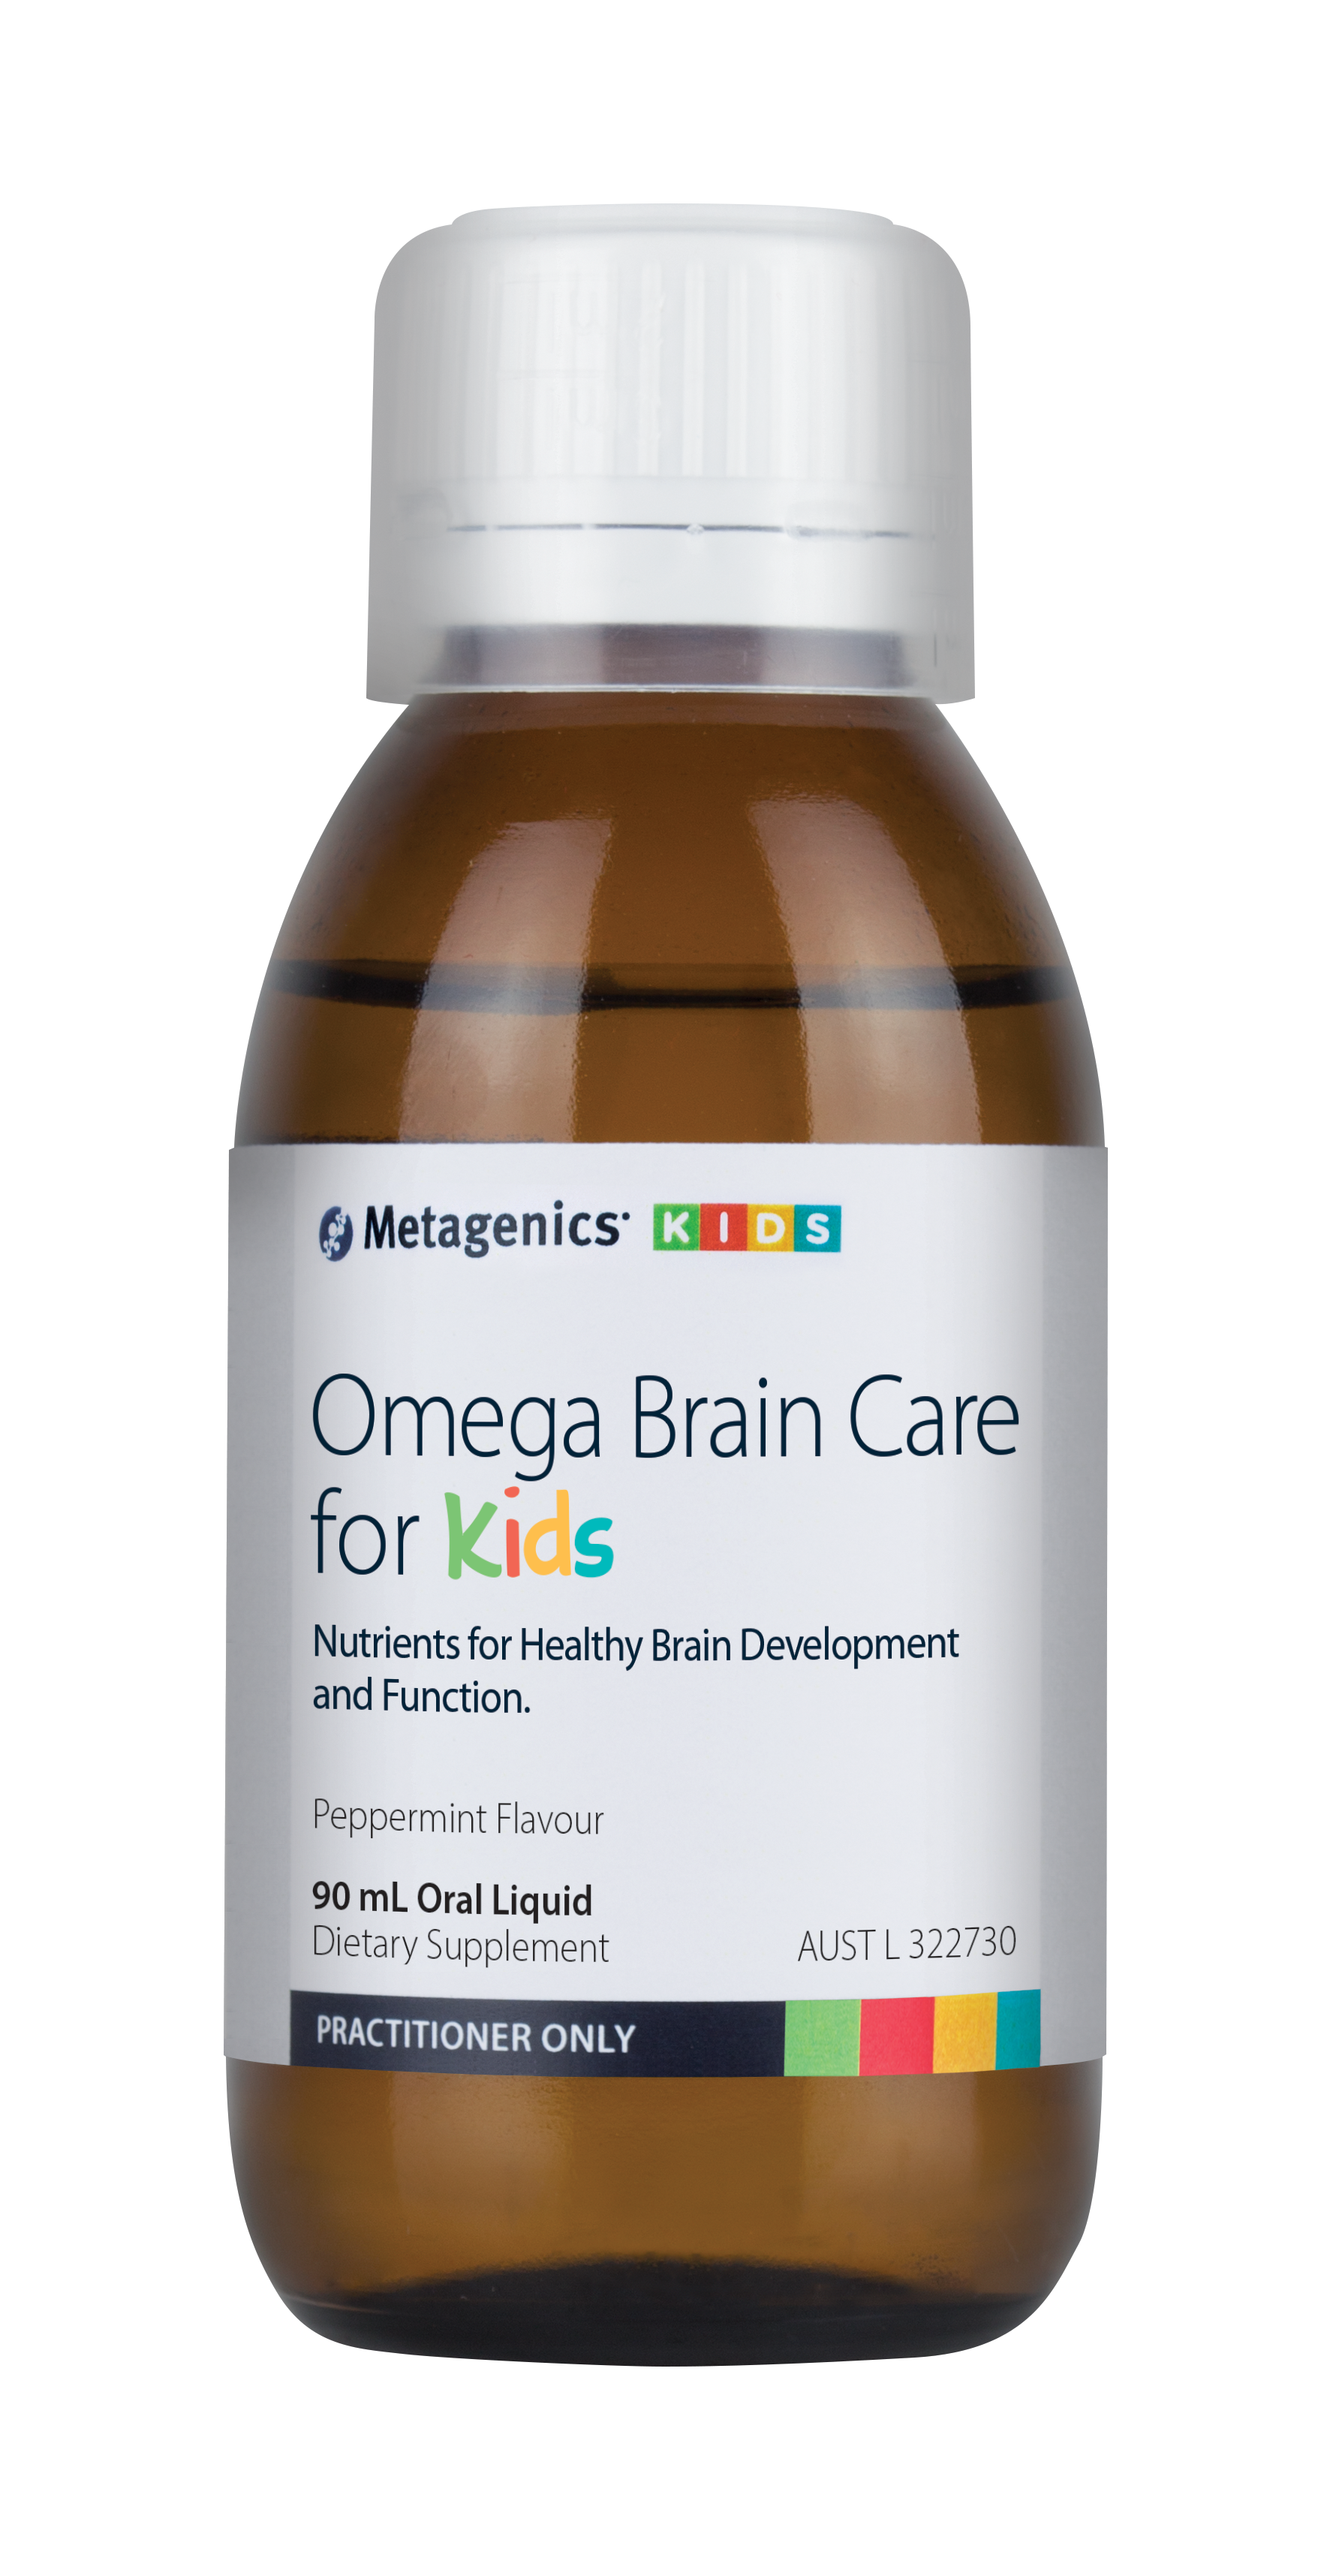 Omega Brain Care for Kids